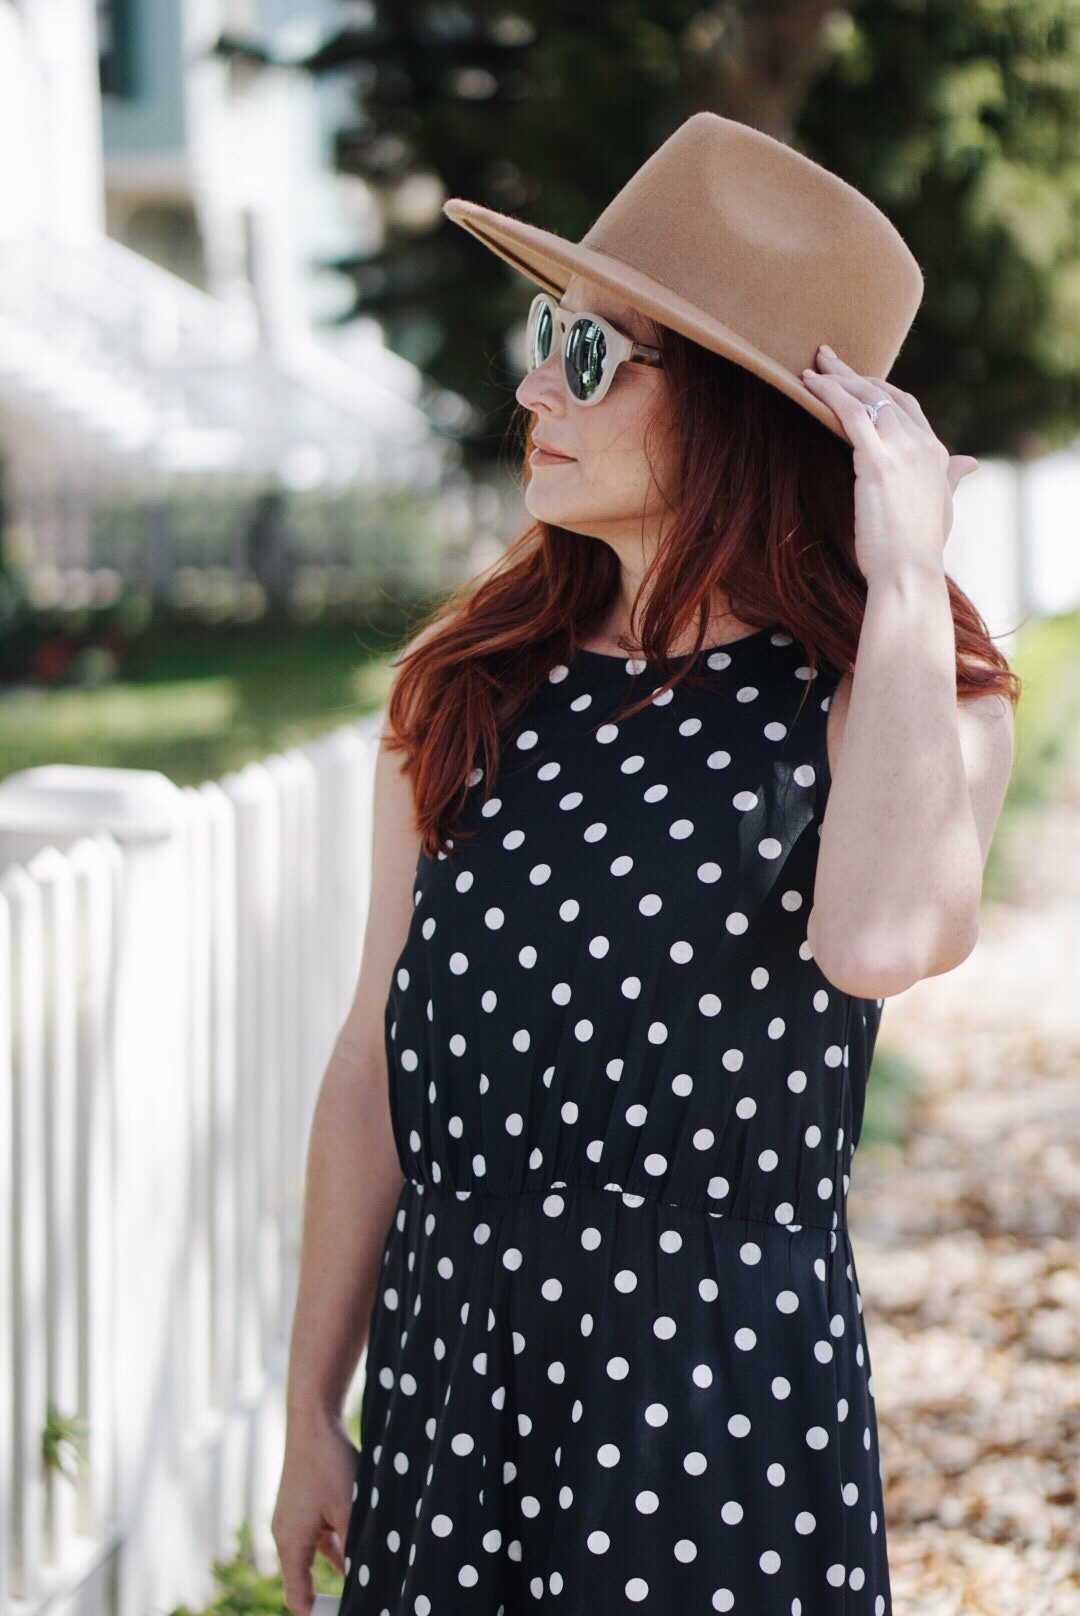 polka dot print, dresses with polka dots, retro sunglasses, brown suede hat outfits, summer style